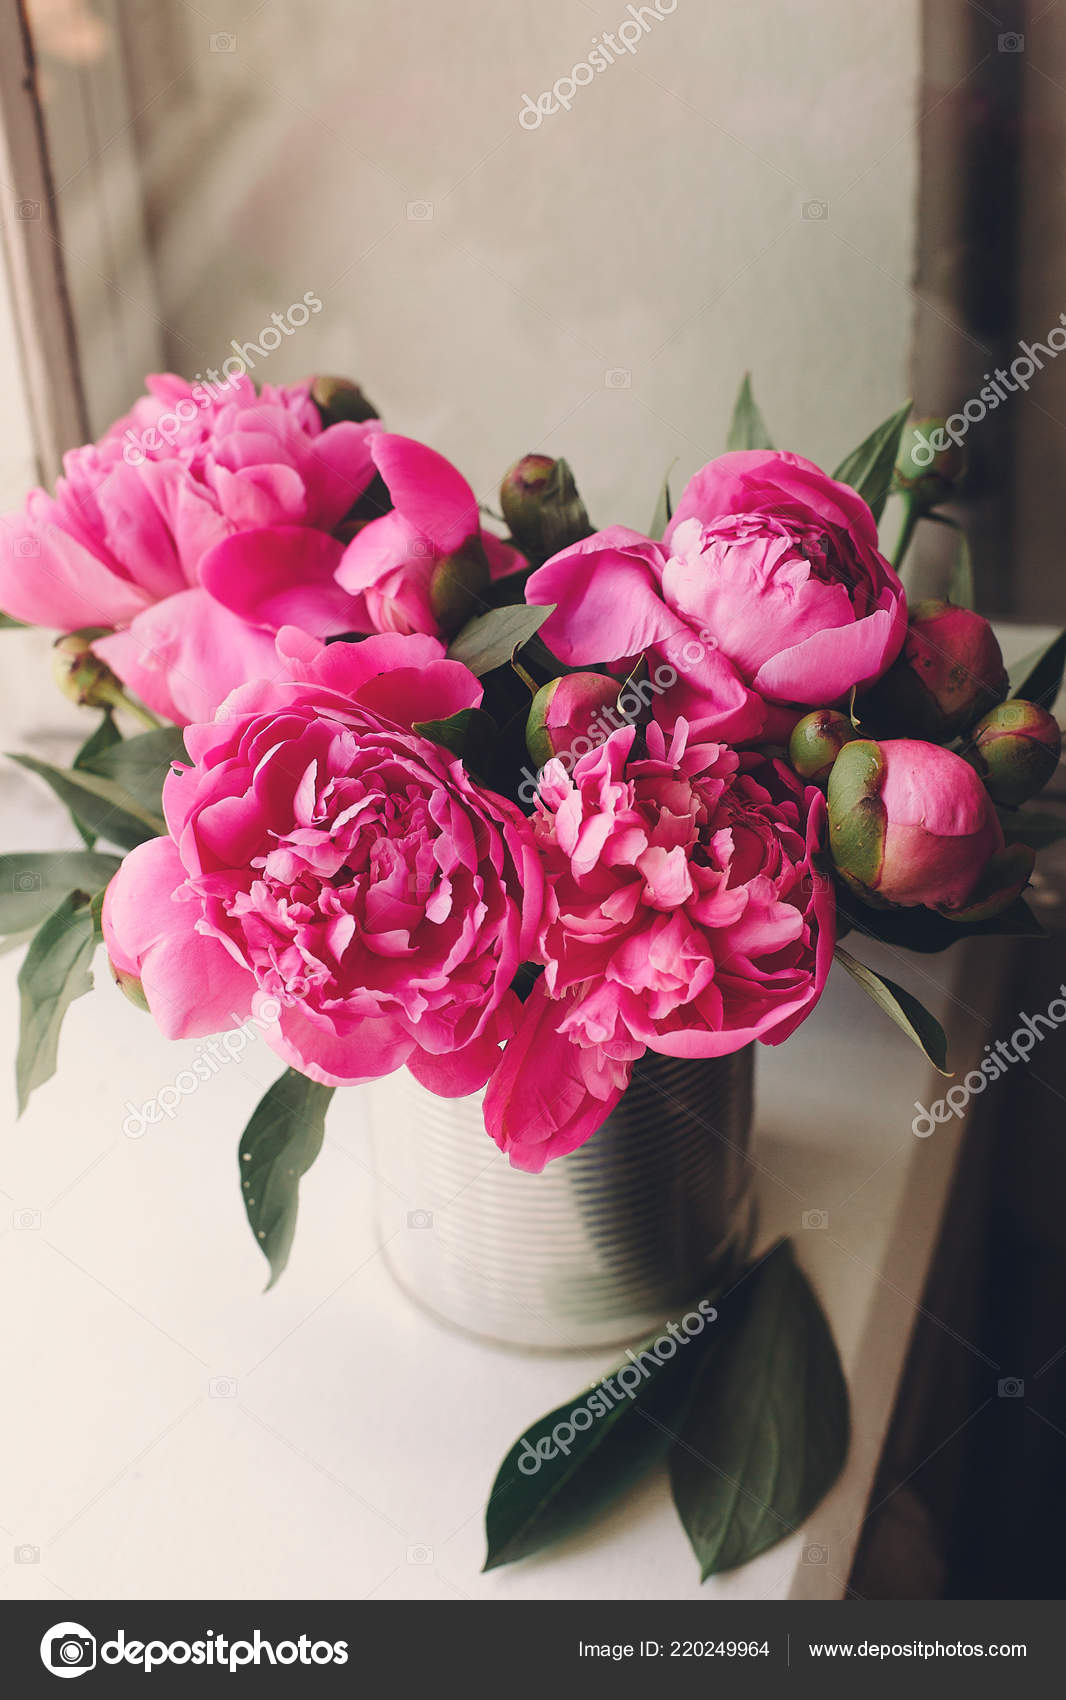 Lovely Pink Peonies Bouquet Vase Rustic White Wooden Background